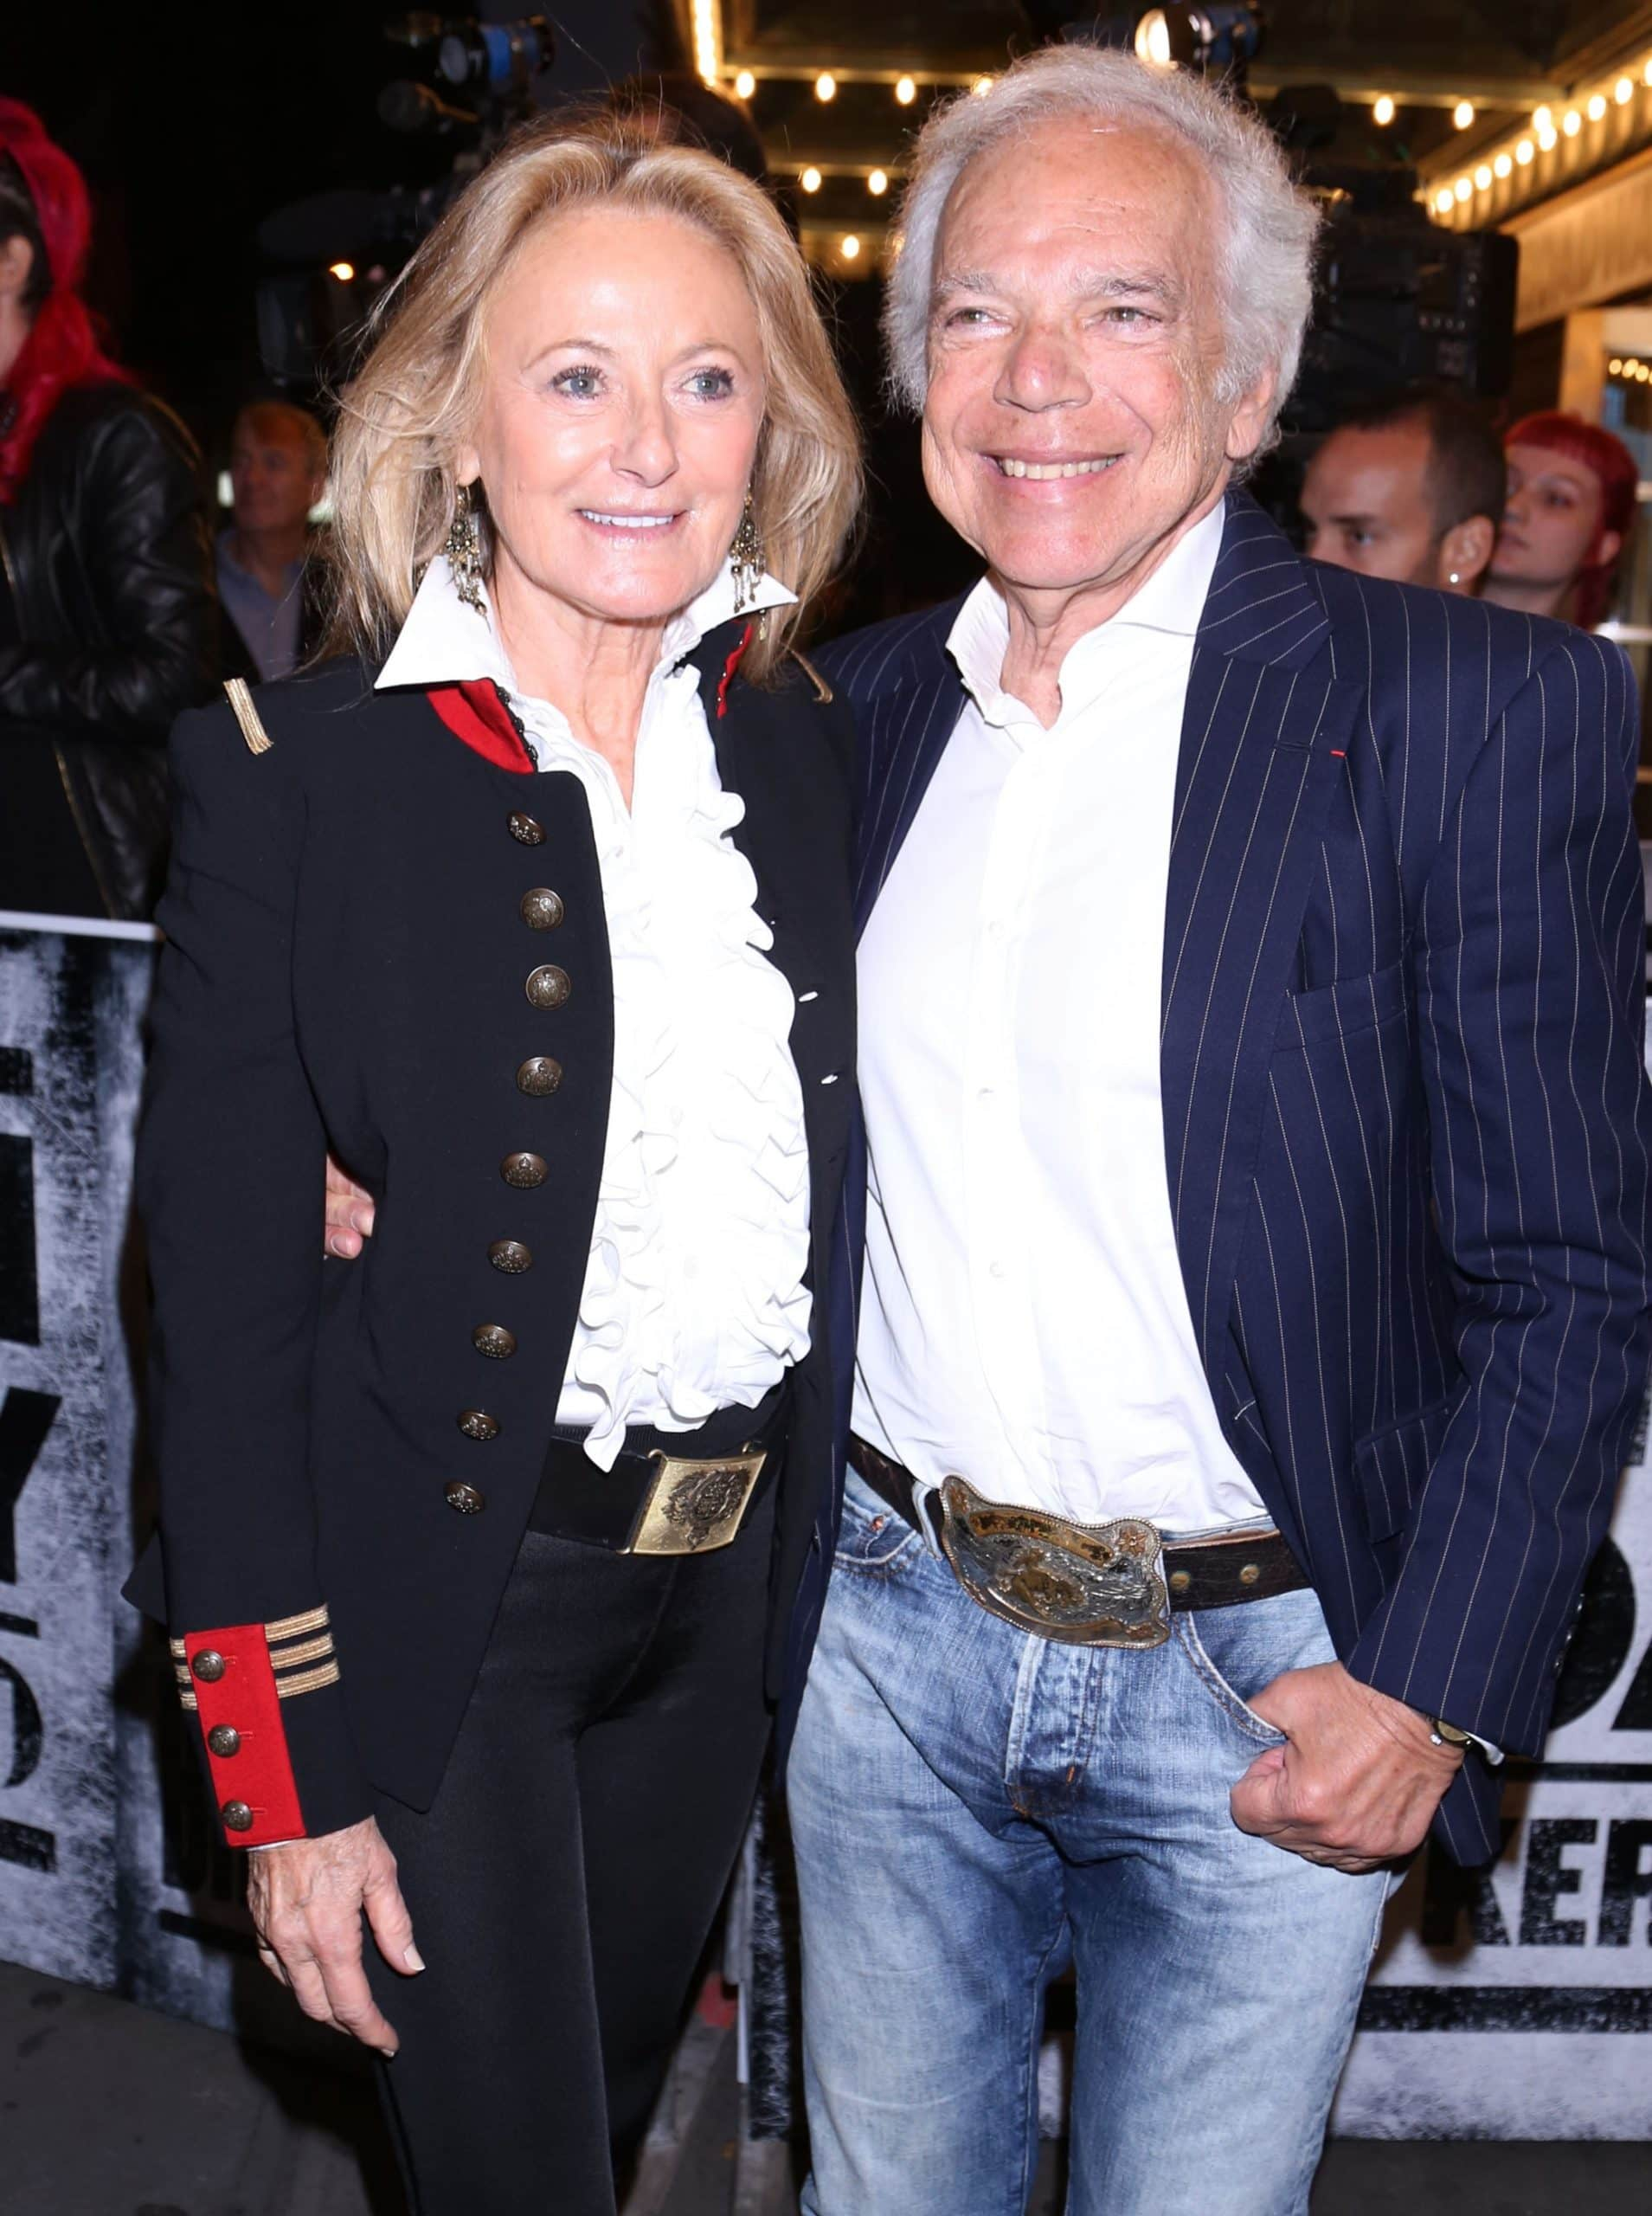 When Ralph Lauren designed the handbag dedicated to his wife Ricky Lauren, he intended for every woman who carries it to feel so at home in the world